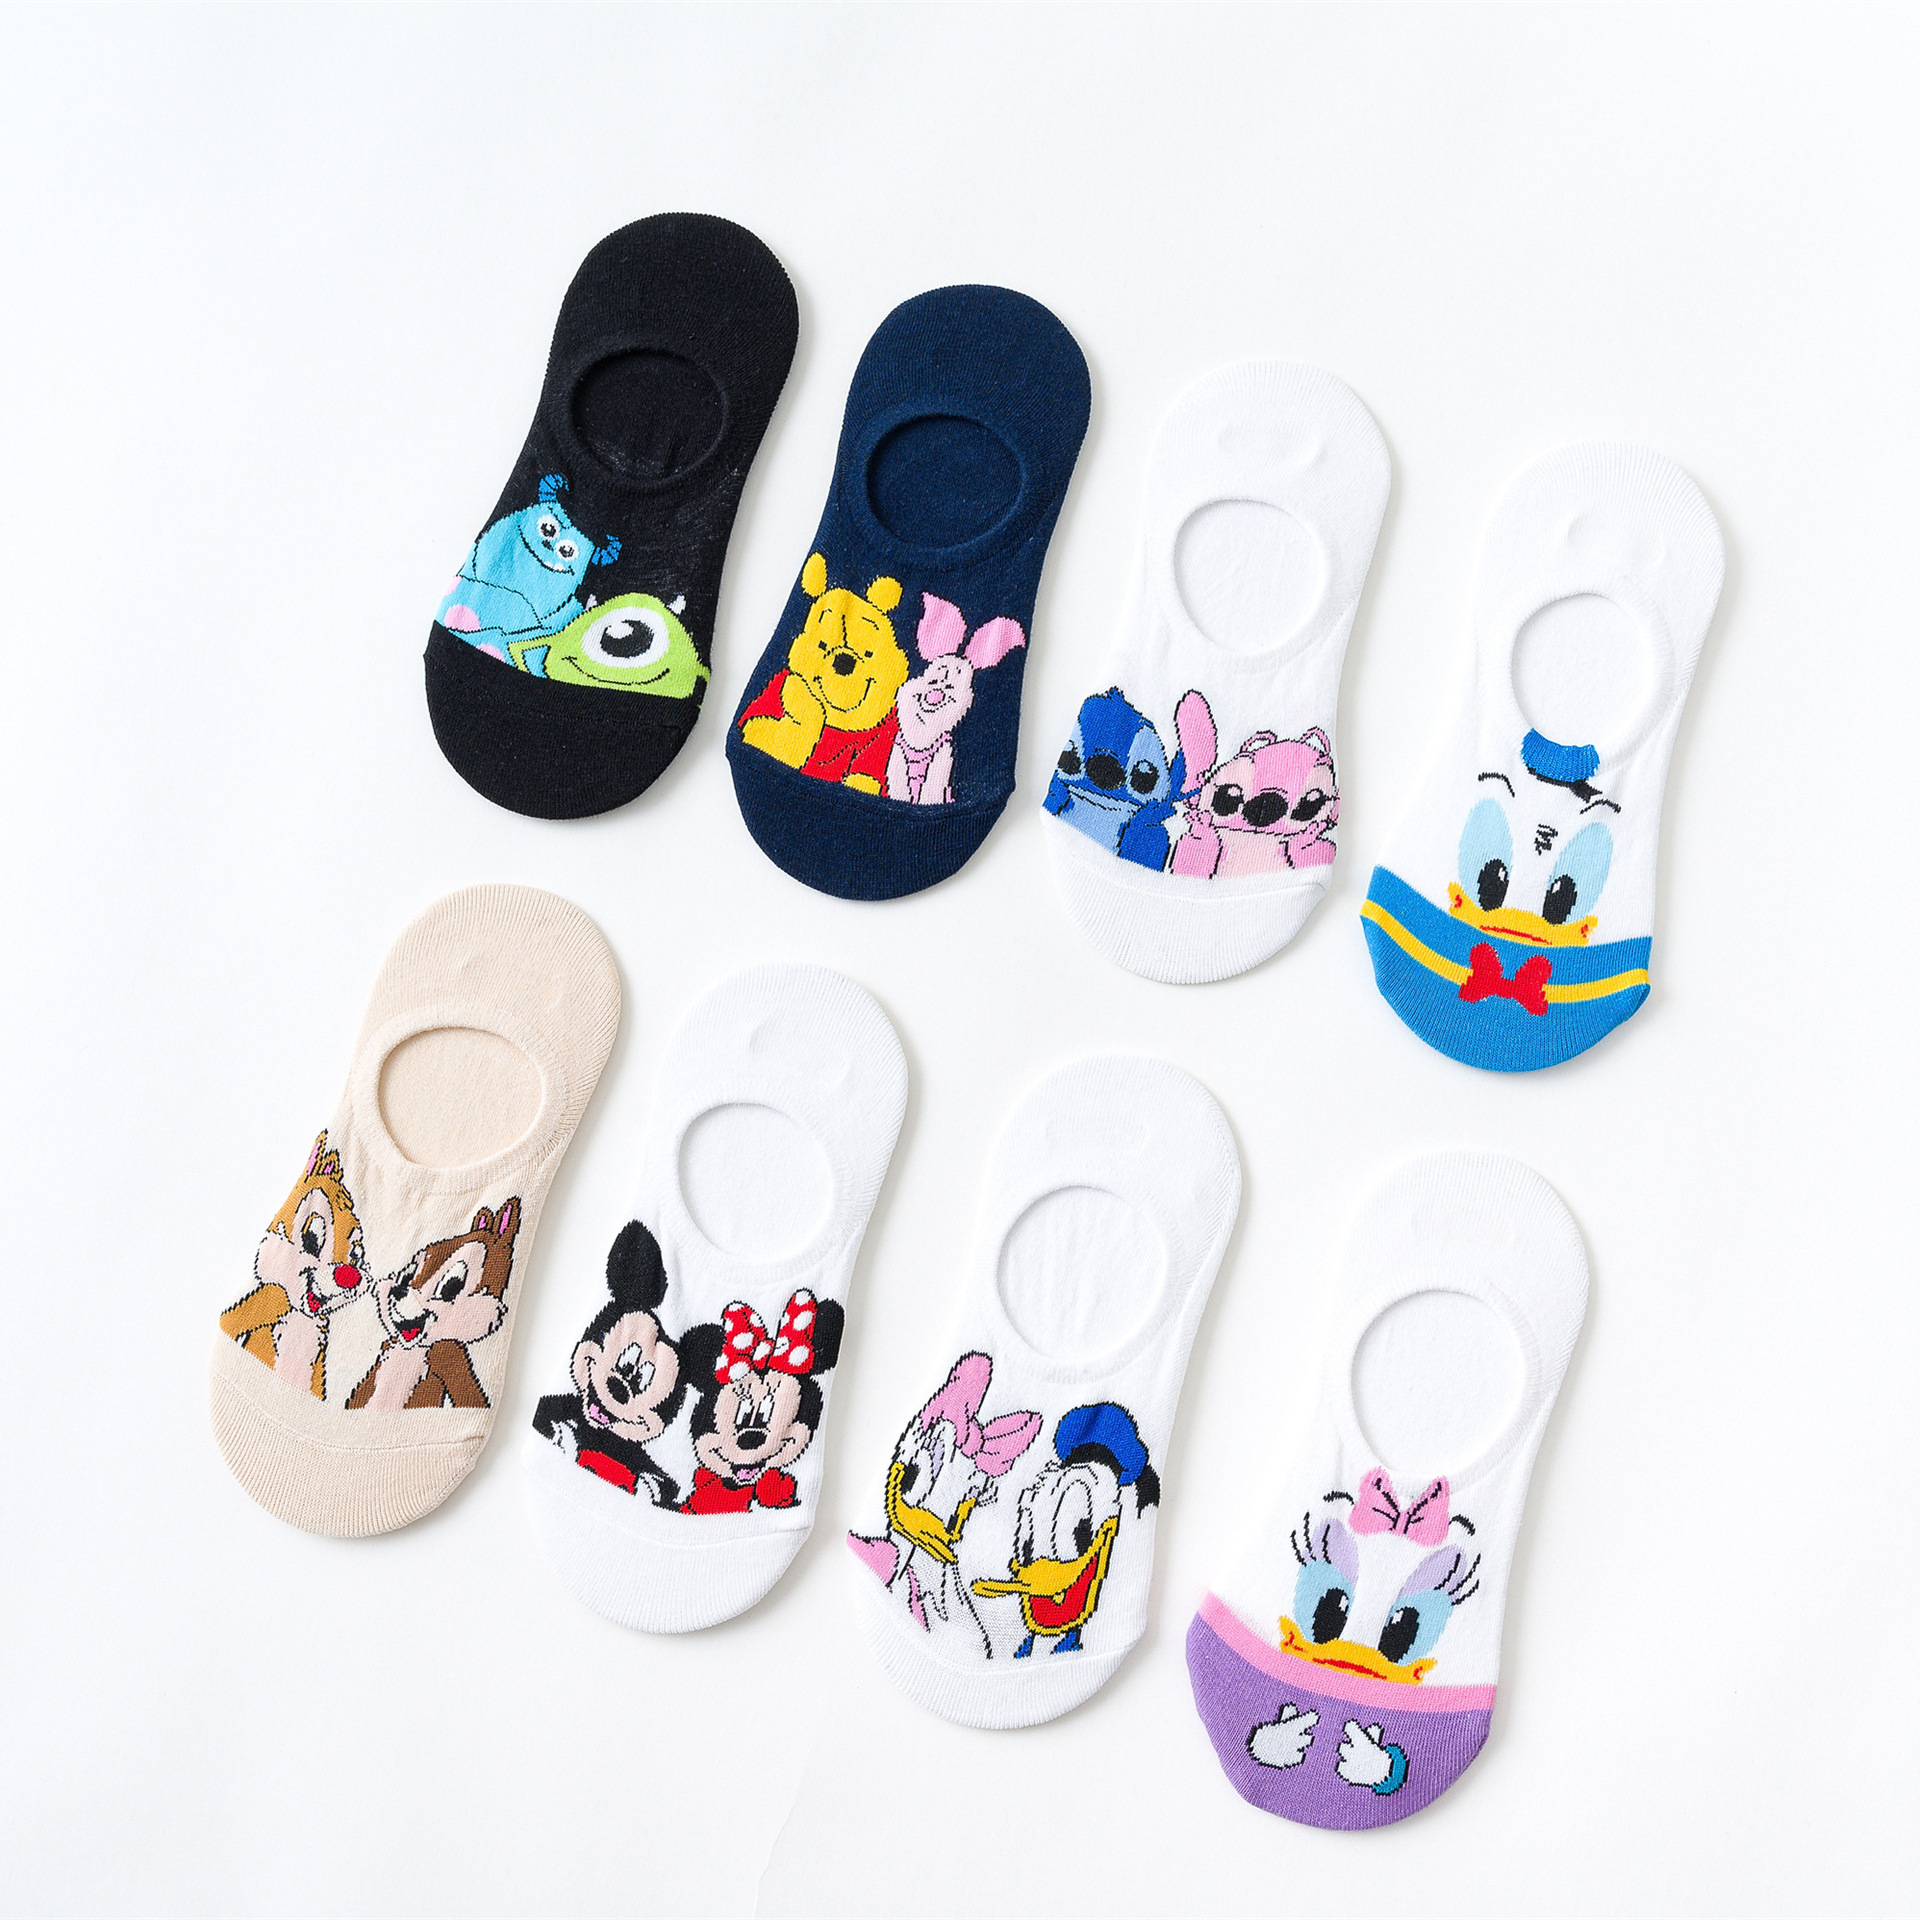 10 Pcs = 5 Pairs Summer Cartoon Cat Fox Rabbit Socks Cute Animal Women Socks Funny Ankle Socks Ladies Cotton Invisible Socks